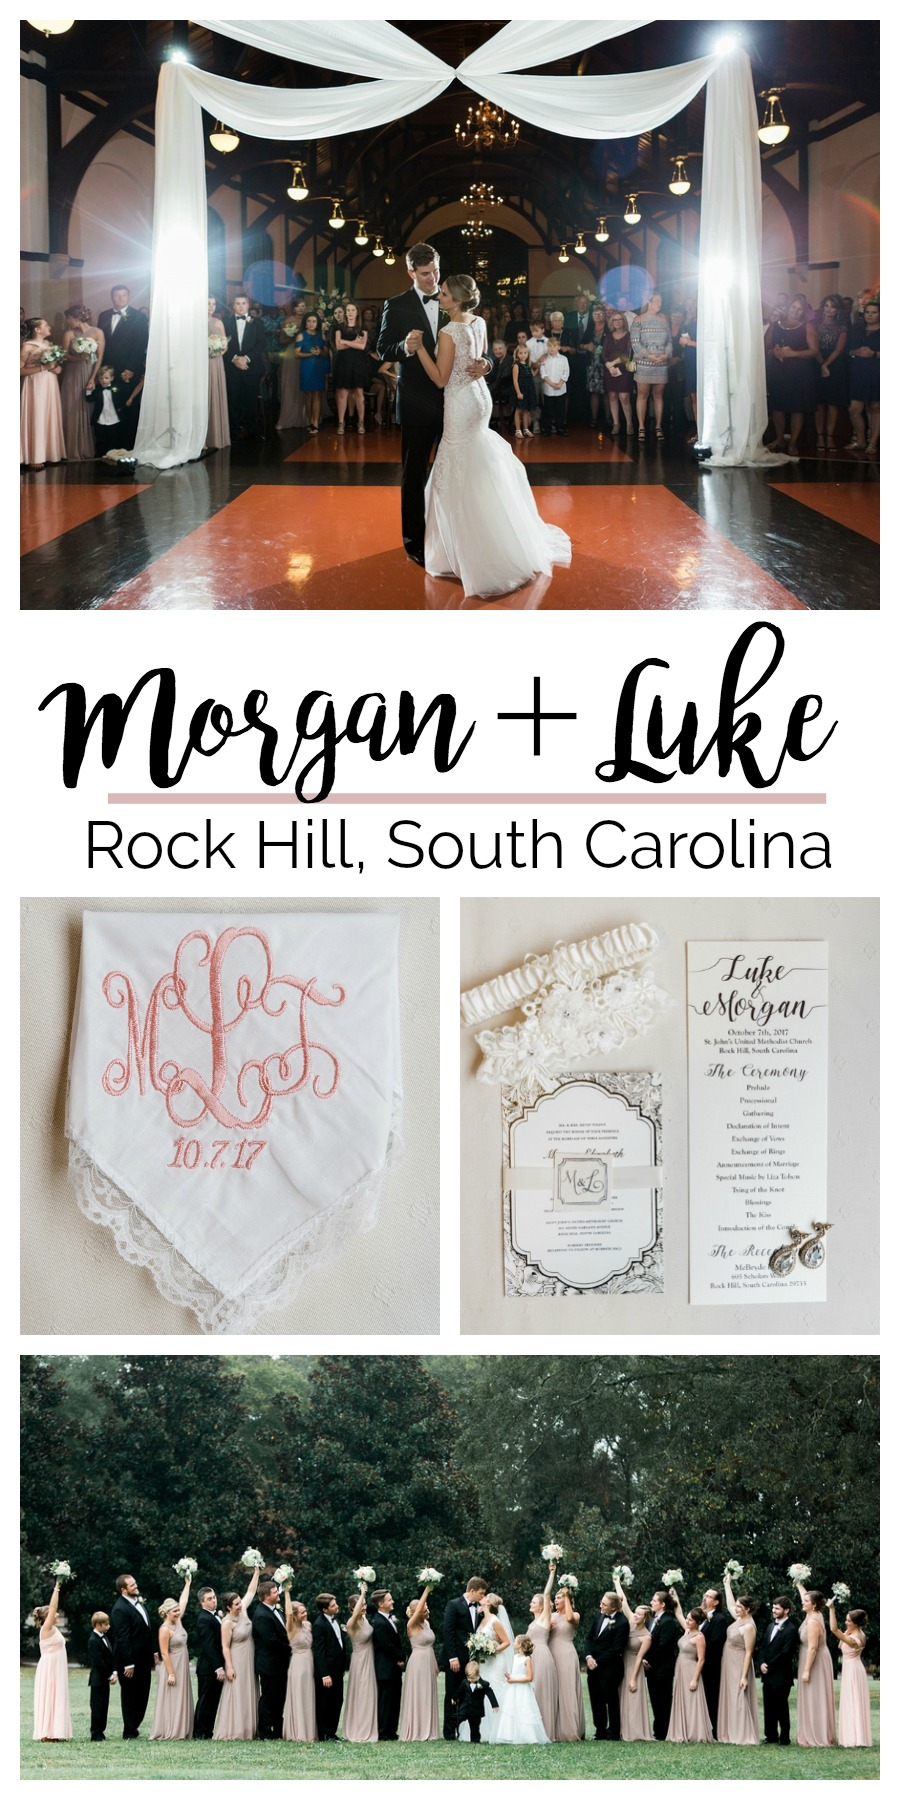 Morgan + Luke : A Winthrop University Wedding for High School Sweethearts | Palmetto State Weddings | Photography by Aaron Reel Photography